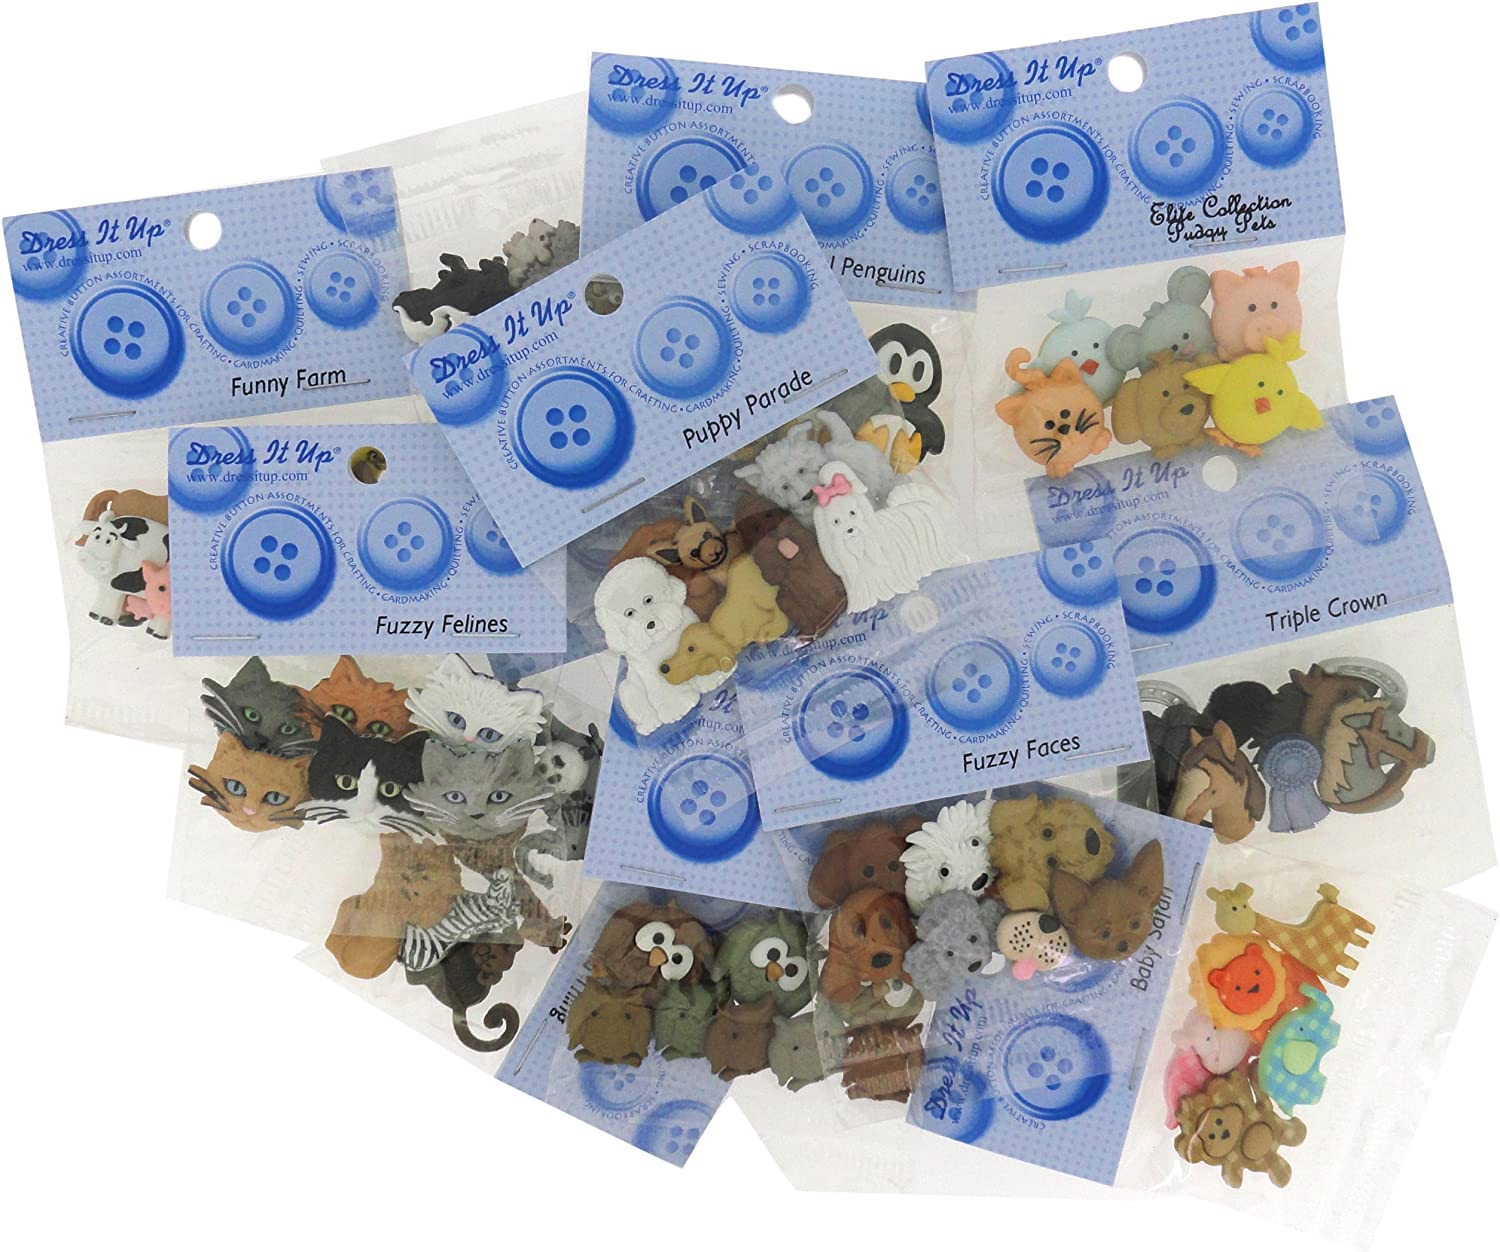 Flatback Wooden Buttons Craft Embellishment Supply Farm Animal Buttons Sheep Buttons Unique Sewing Fasteners Grab Bag Cute White Lambs